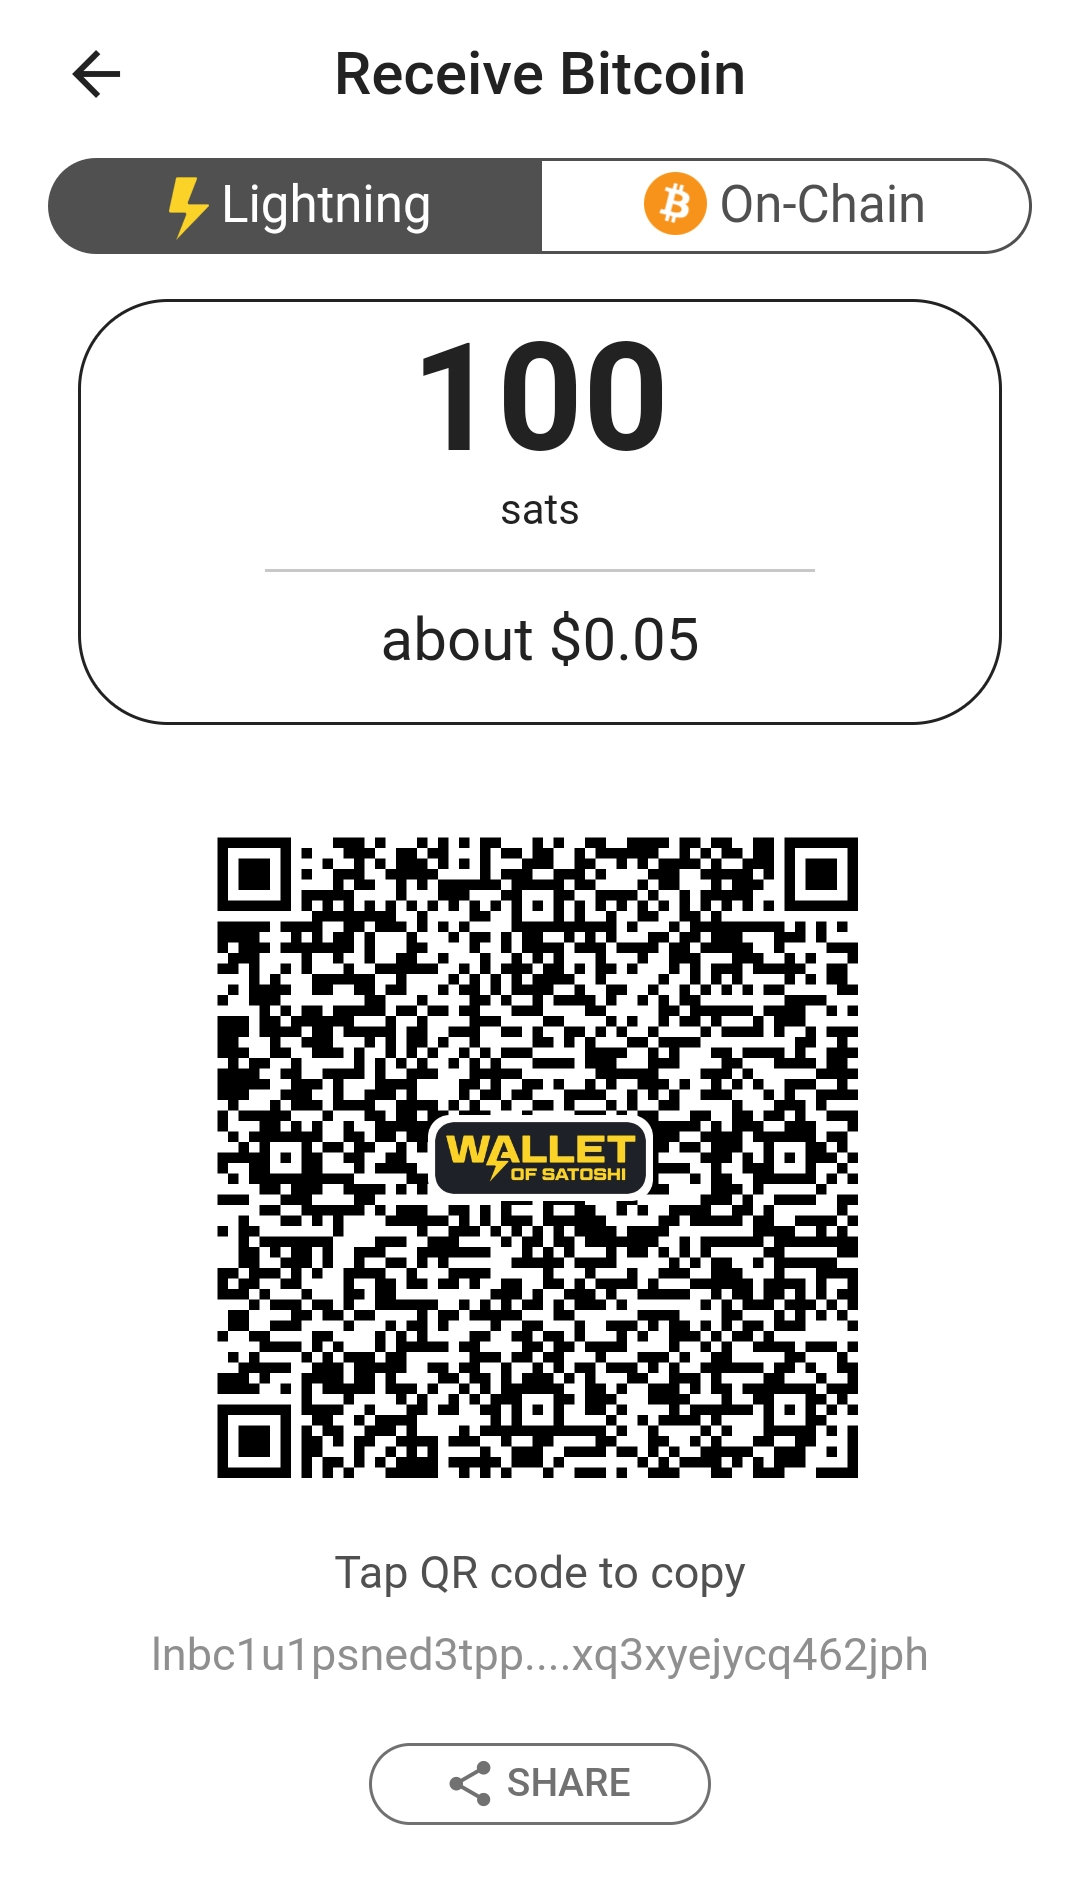 Receive Bitcoin from a Wallet of Satoshi Wallet